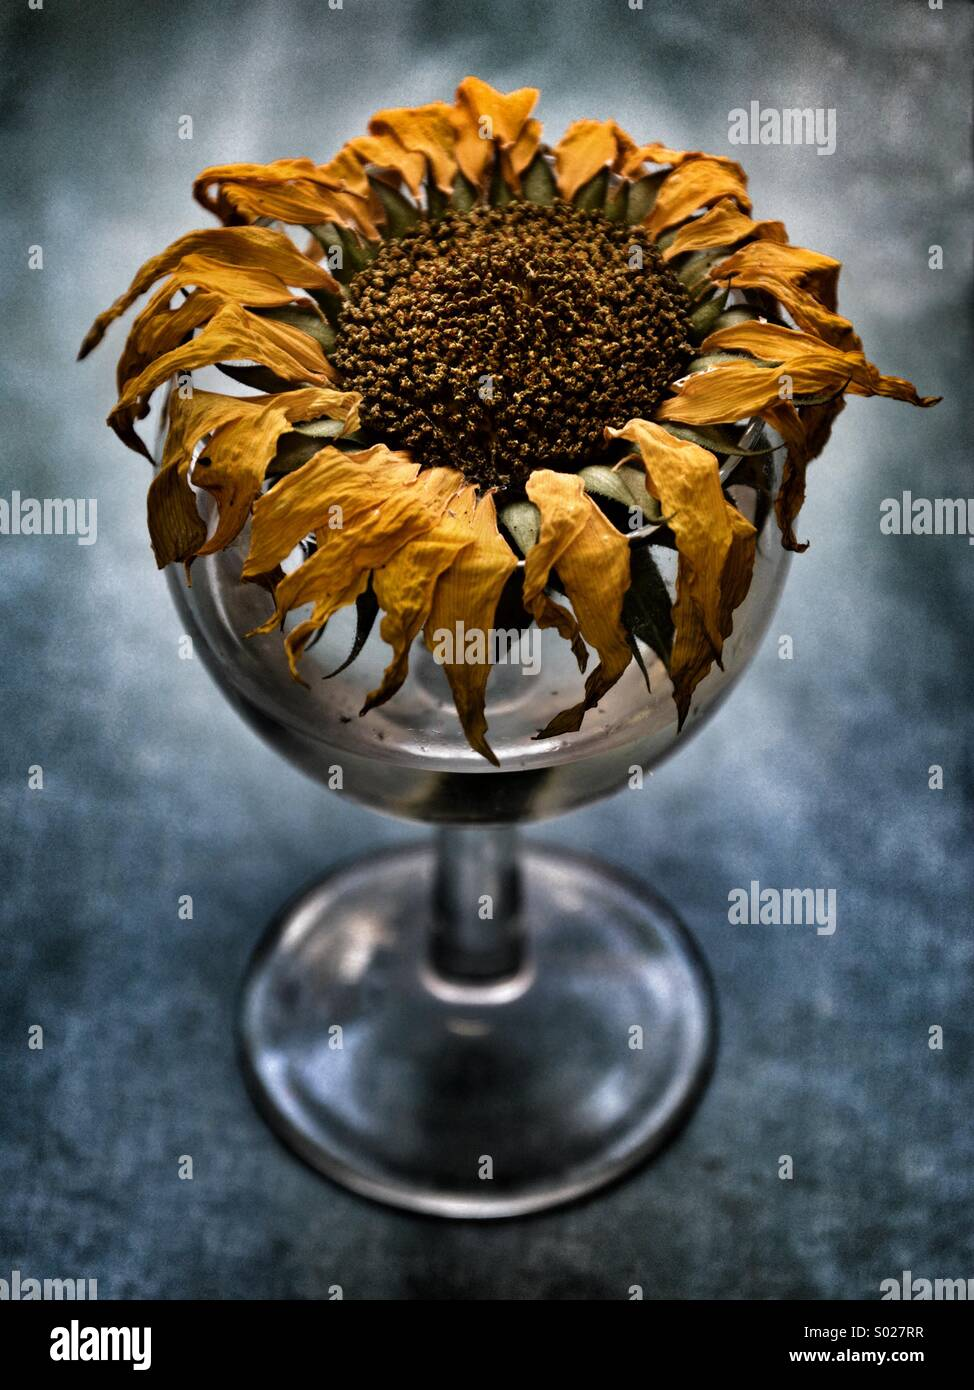 Parched, thirsty sunflower in a glass of water. - Stock Image